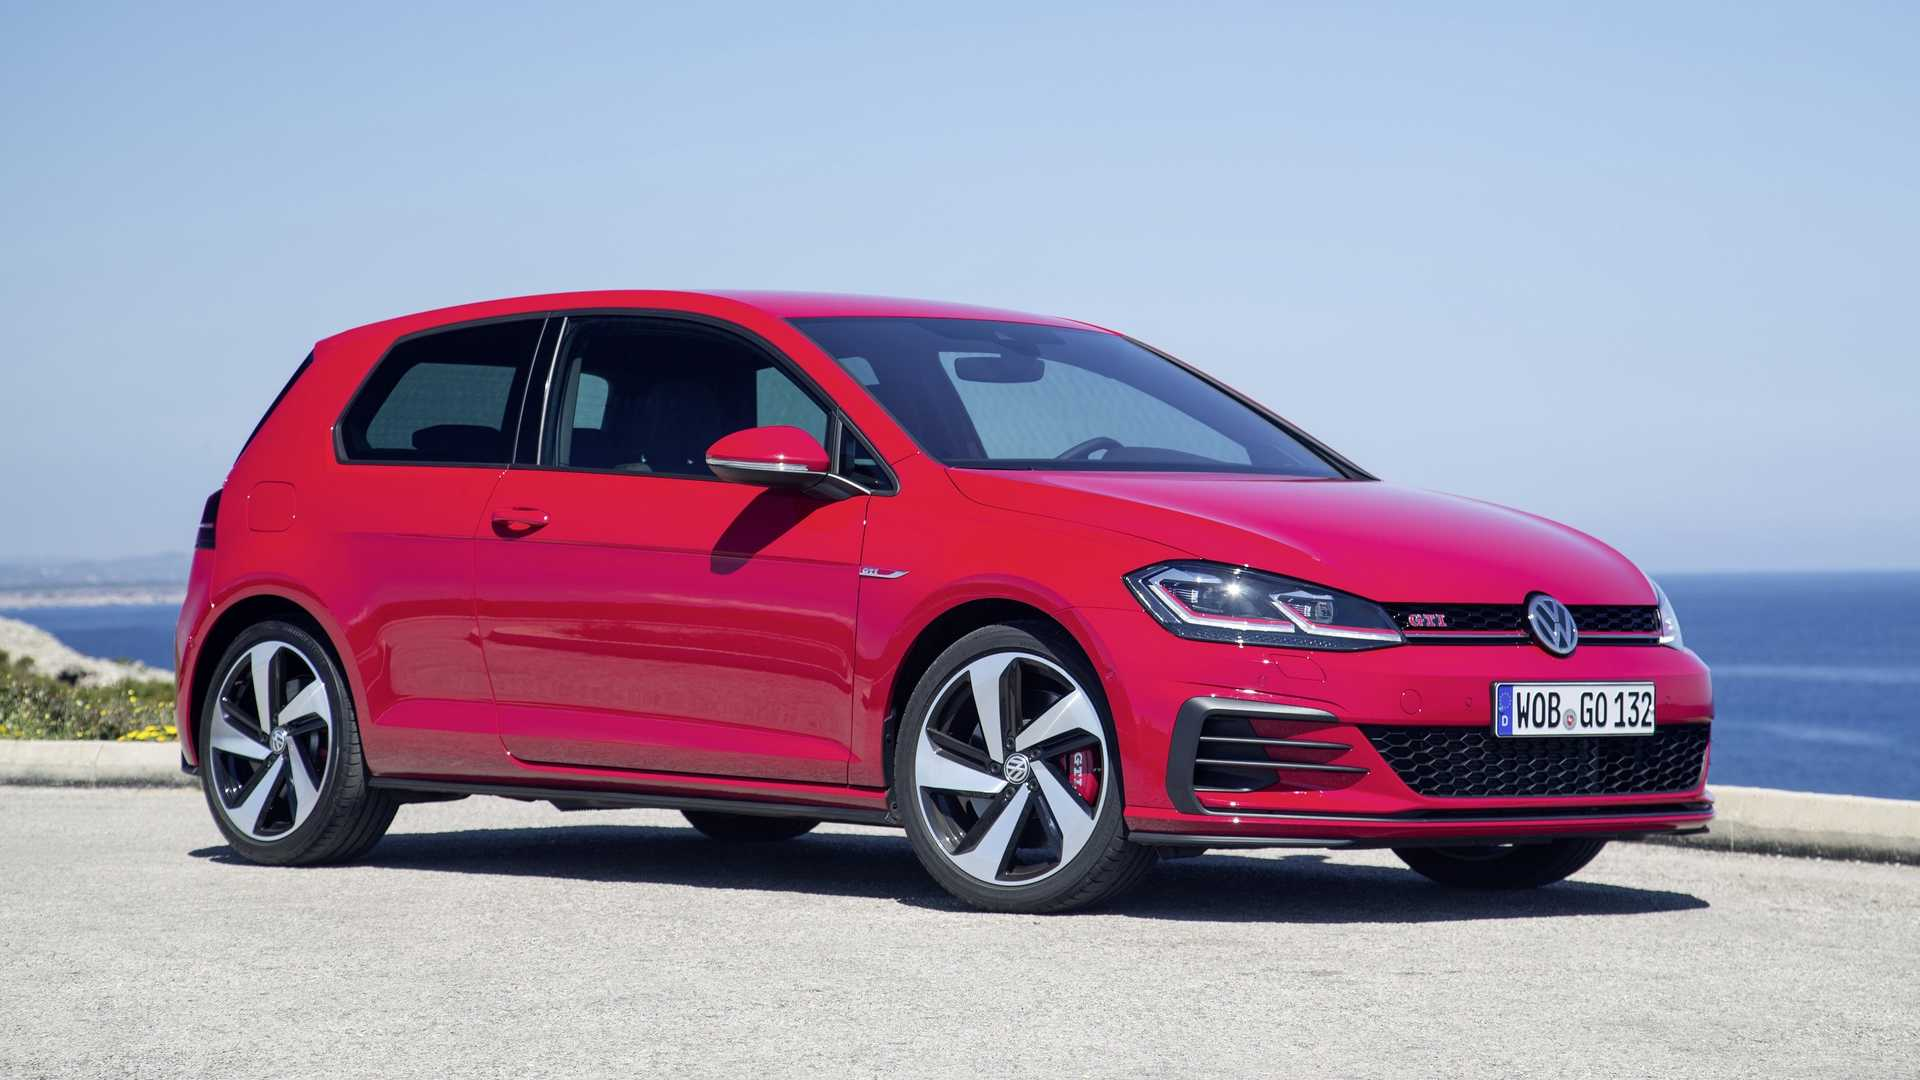 80 Great 2019 Volkswagen Golf Gti Review with 2019 Volkswagen Golf Gti